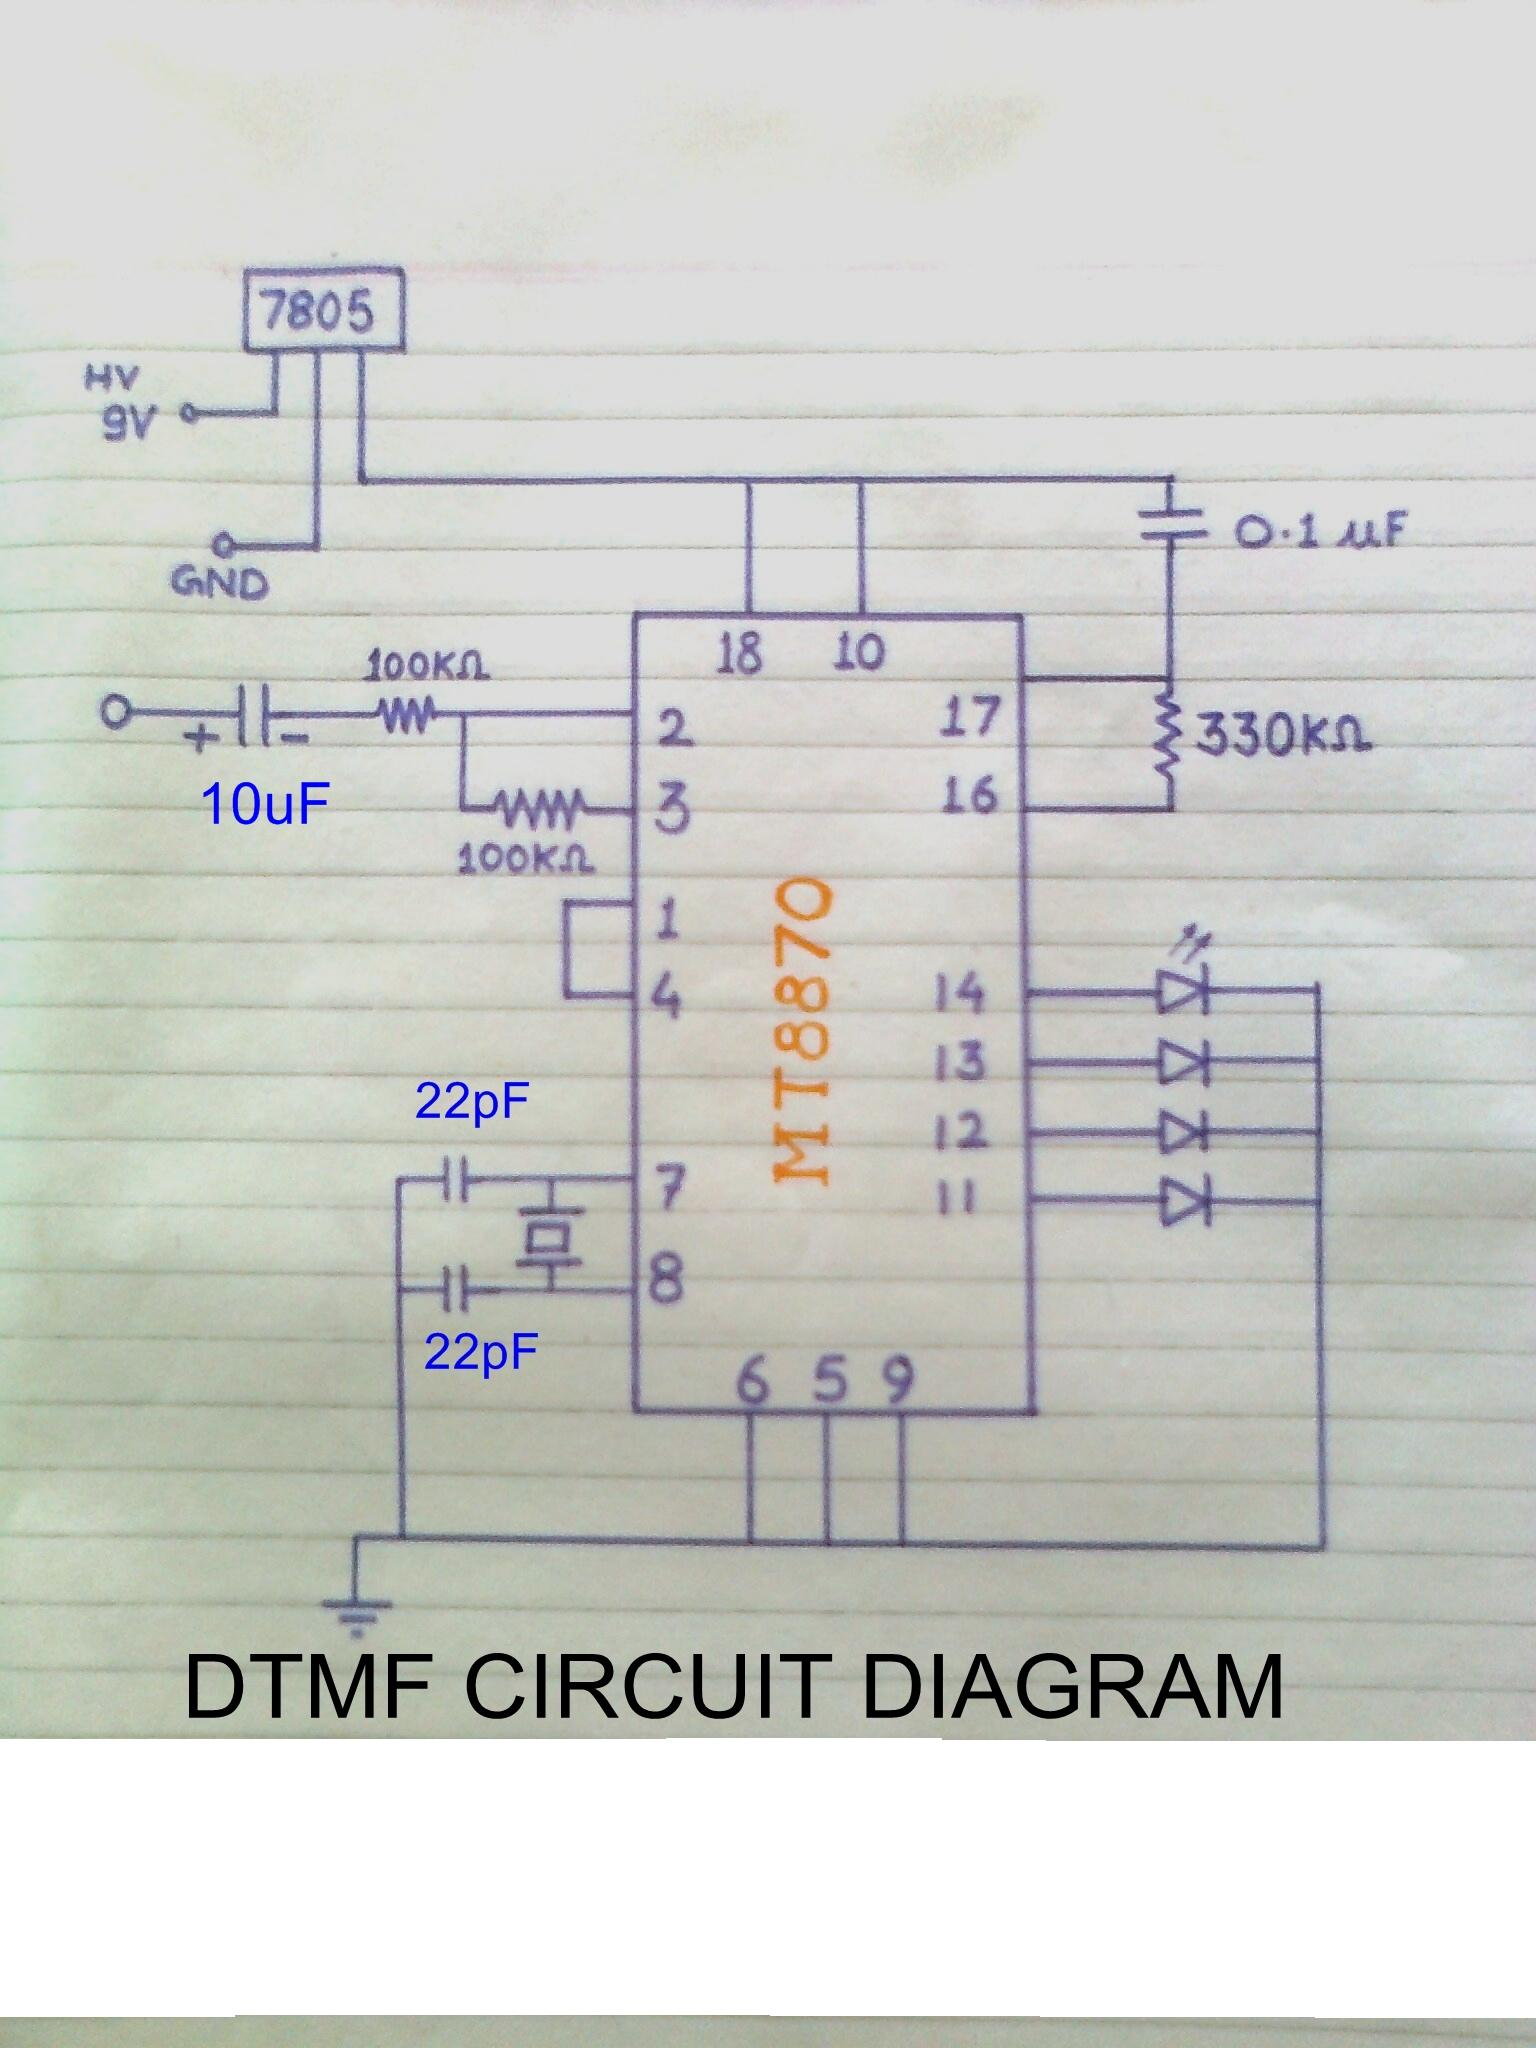 how to make dtmf decoder electronics project myclassbook org rh myclassbook org mt8870 dtmf decoder circuit diagram DTMF Decoder Raspberry Pi